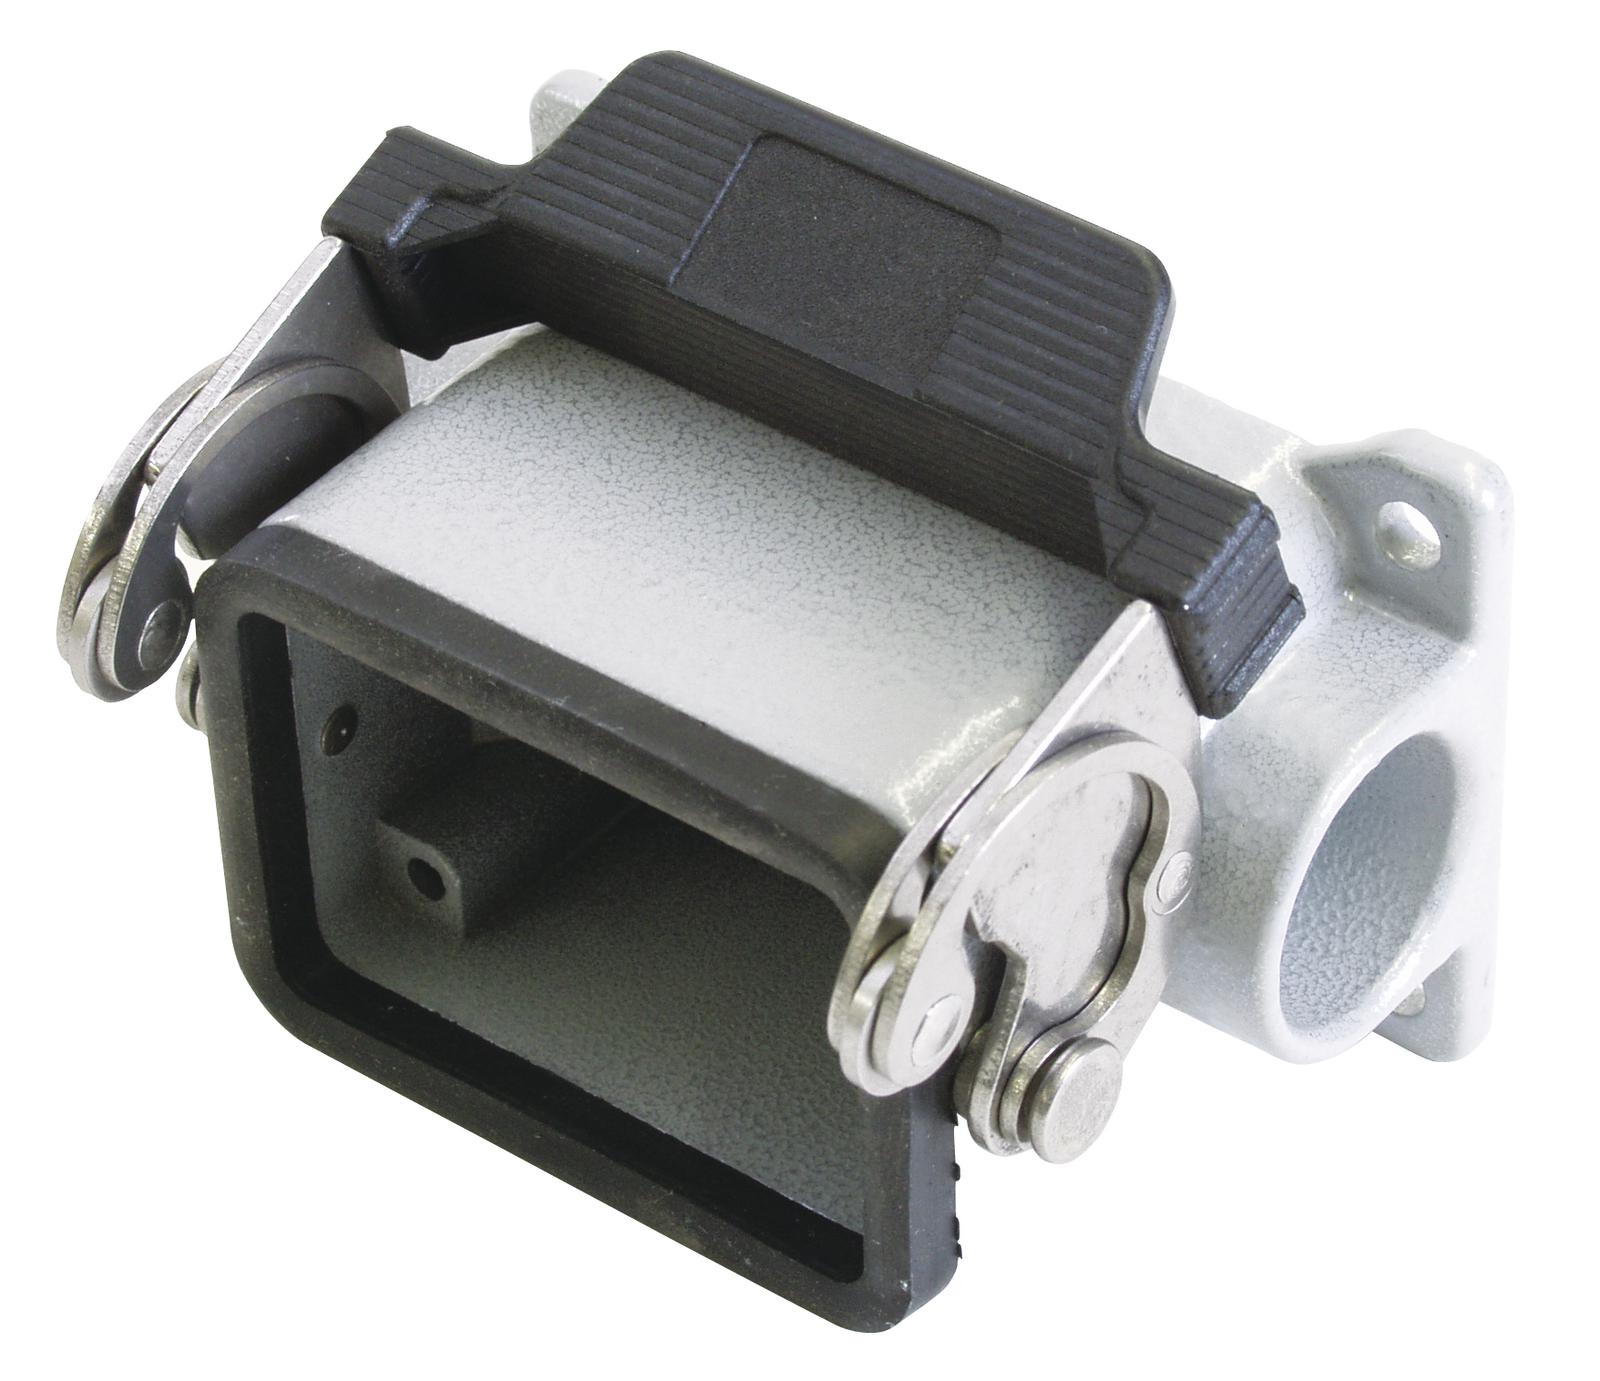 Base adapter ILME connector to 6-pin, 1x PG 16